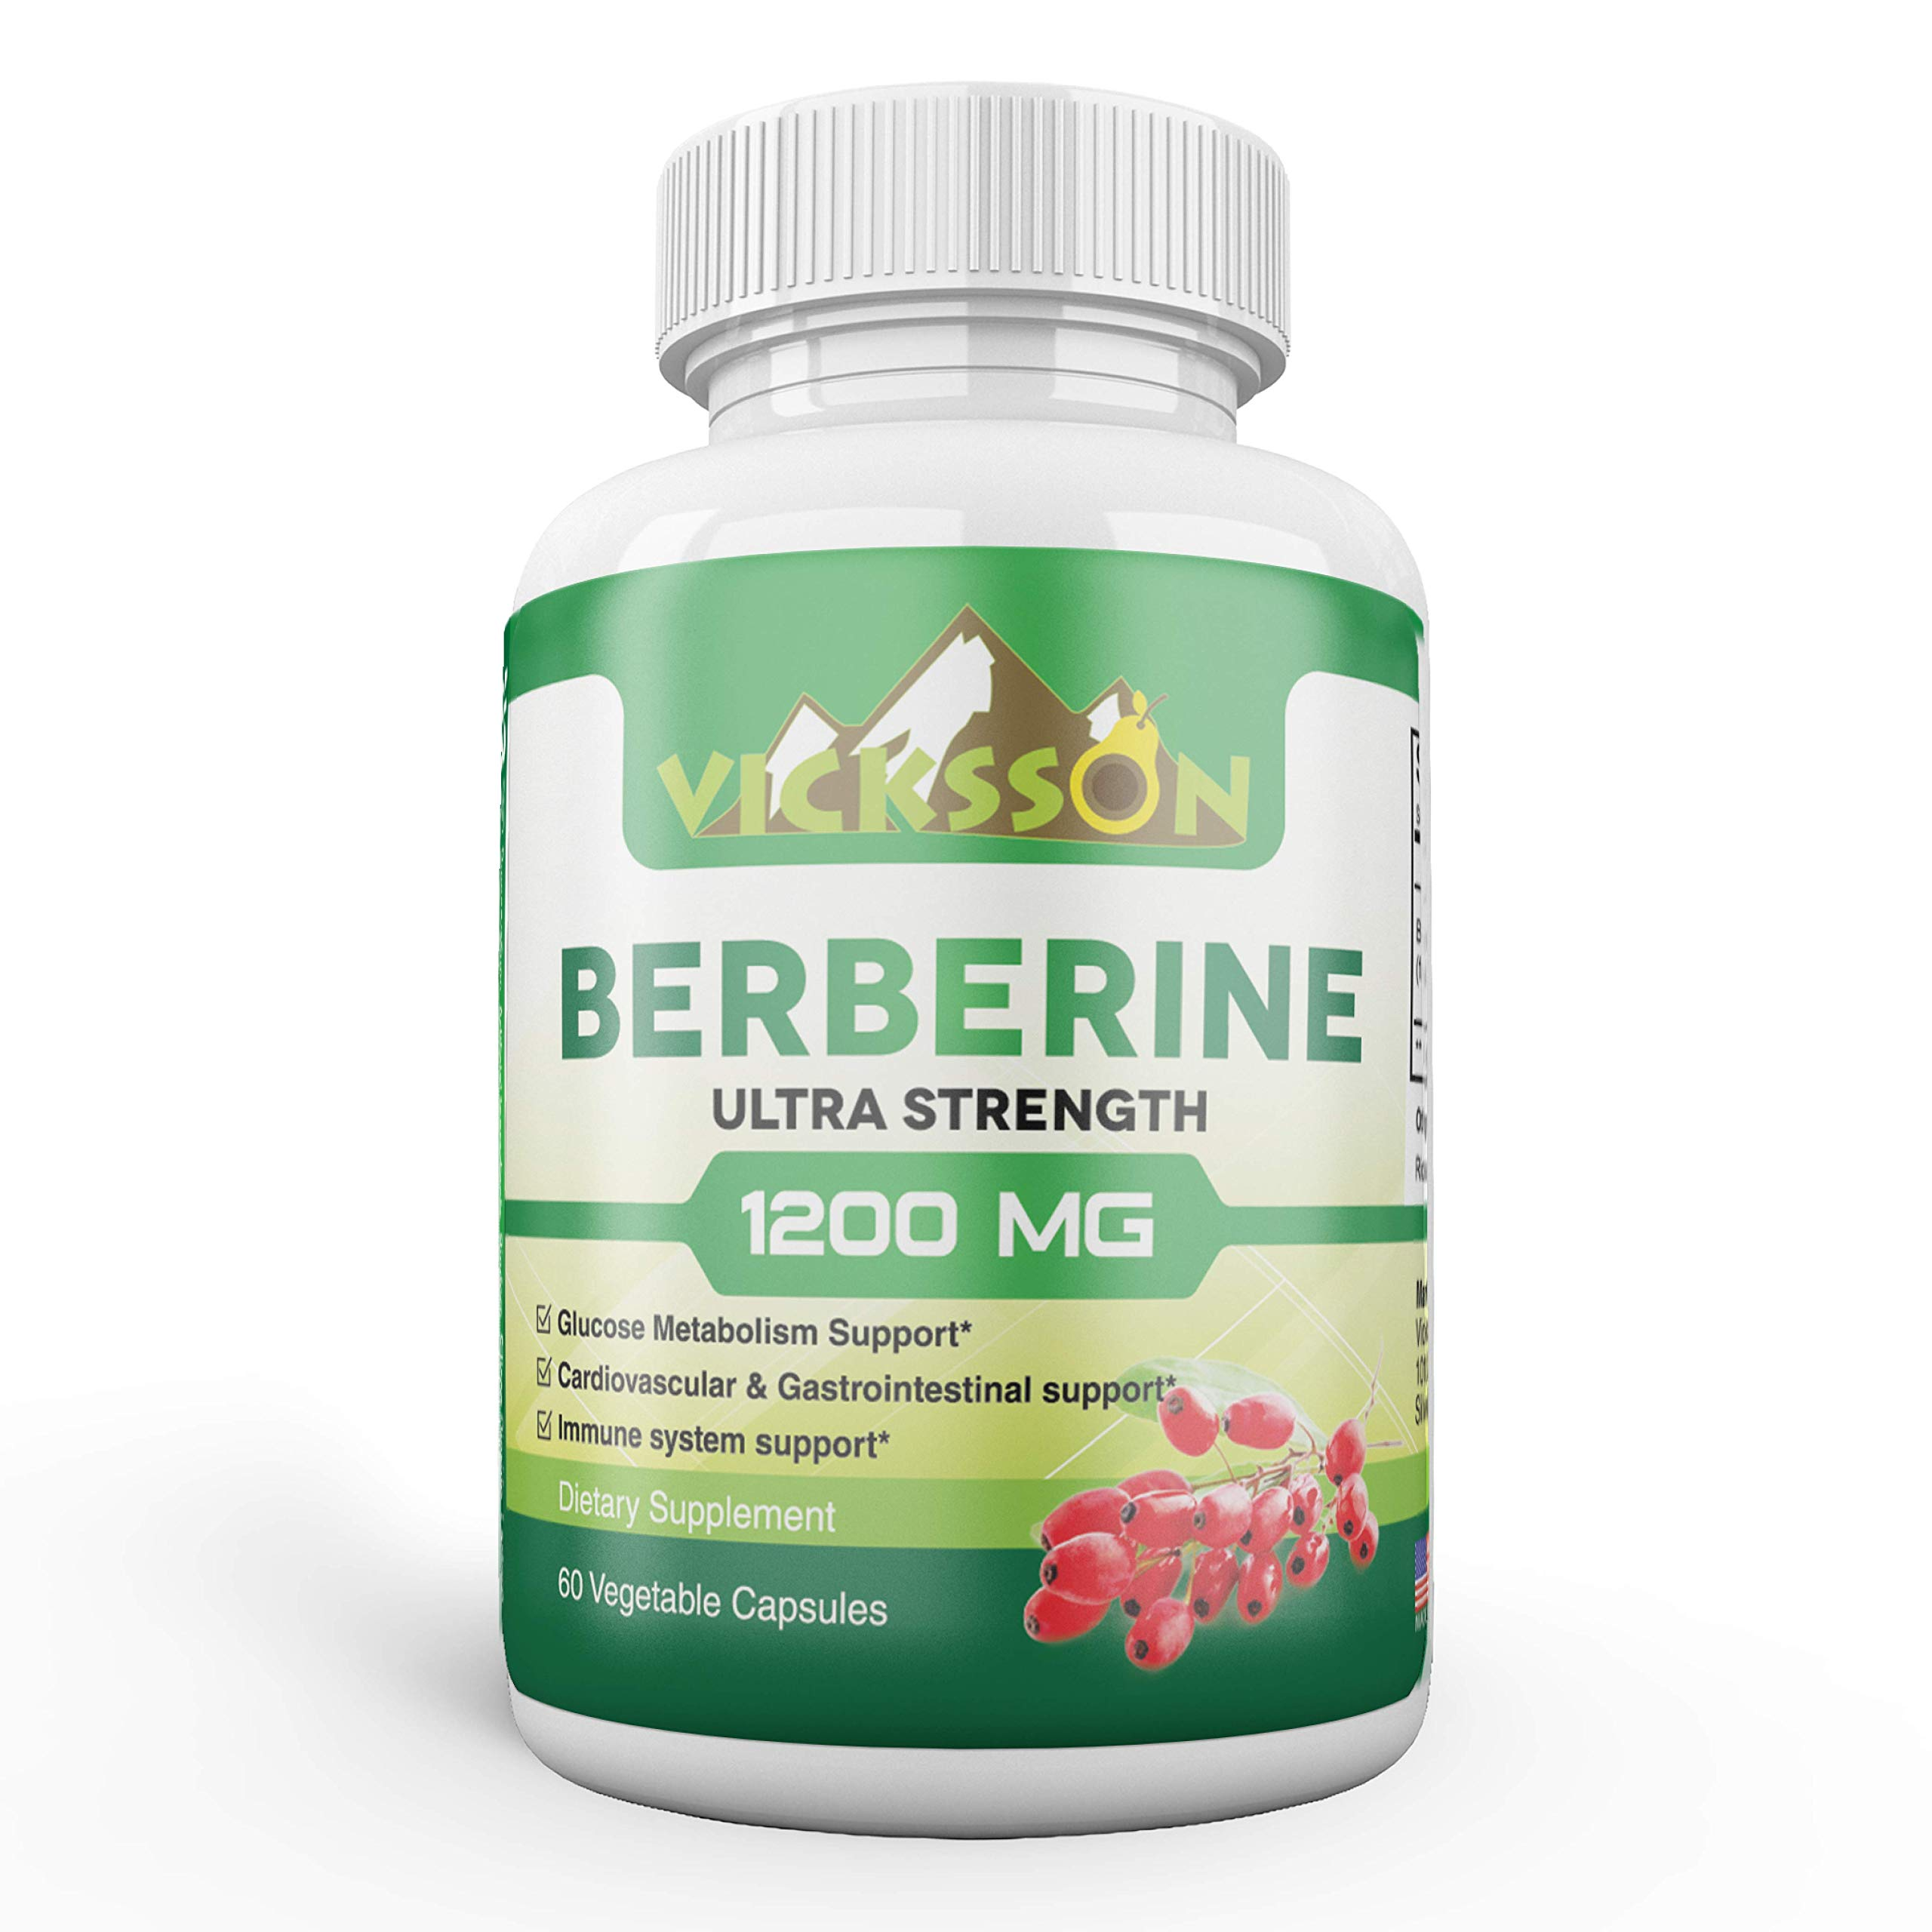 Vicksson Berberine HCL Supplement 1200mg, Supports Immune System, Glucose Metabolism, Blood Sugar, Insulin for Diabetes, Cardiovascular & Gastrointestinal Function, Weight Management | 60 Capsules